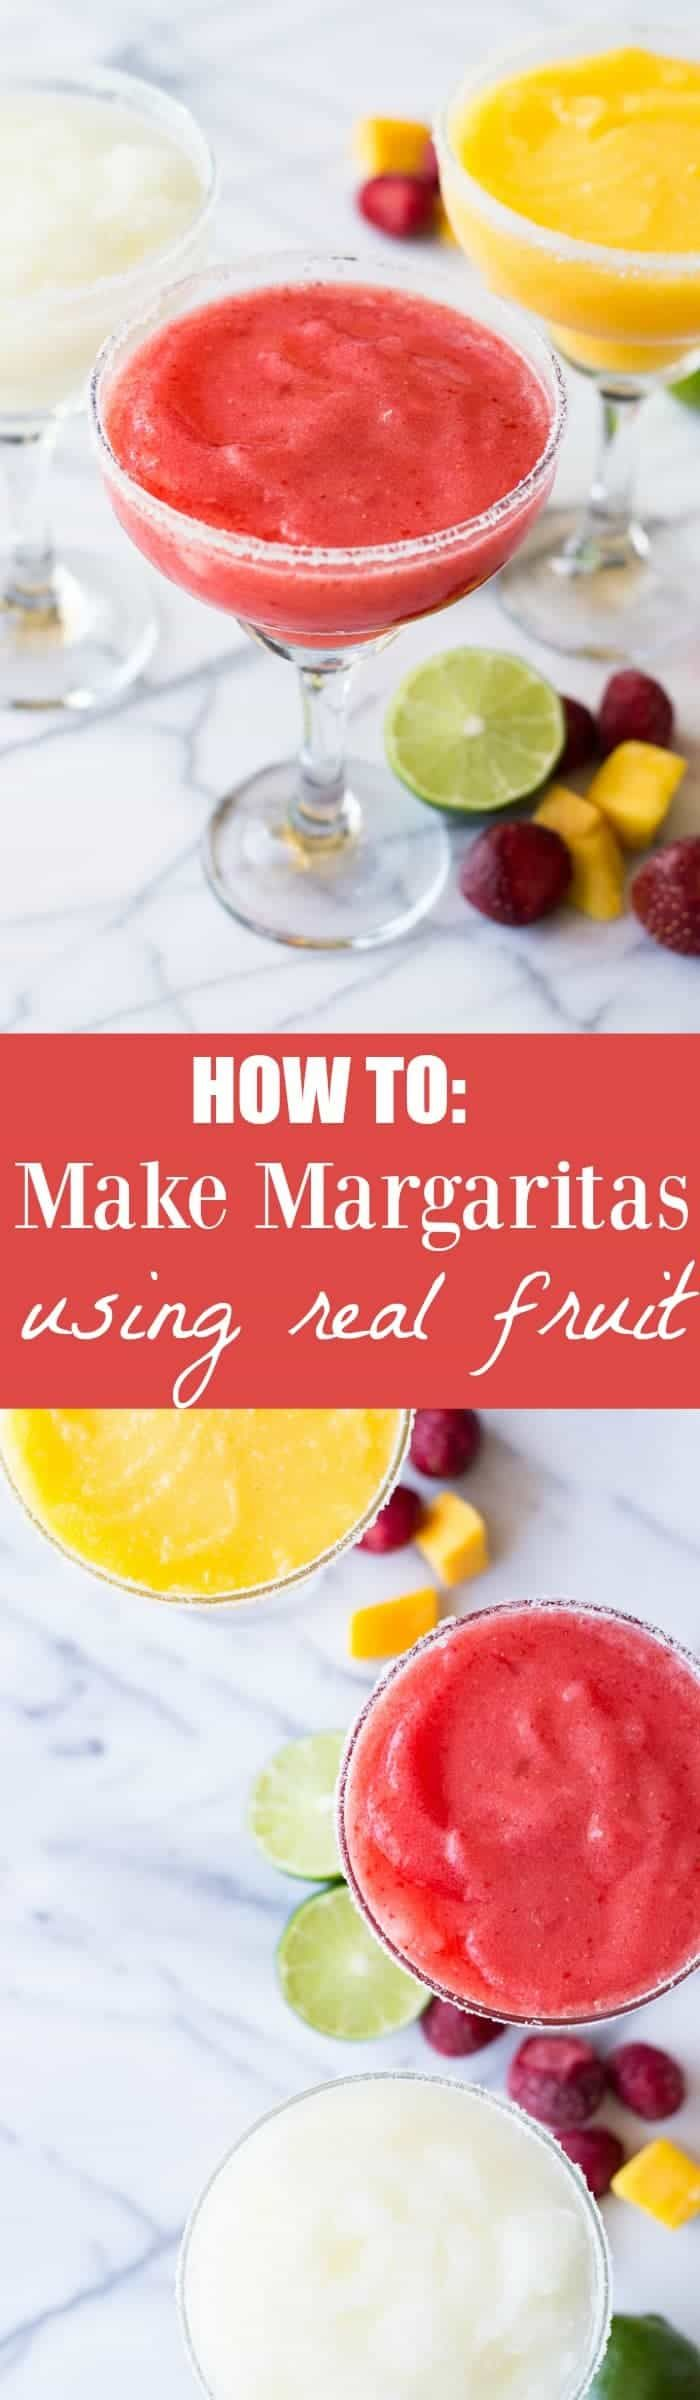 Ever wonder how to make restaurant style margaritas at home?! These fruity, slushy margaritas are made using real fruit and are an absolutely perfect cocktail for sipping on! Knowing how to make margaritas is a very important skill in life. These are such easy drinks to make. They are so refreshing, especially when made with...Read More